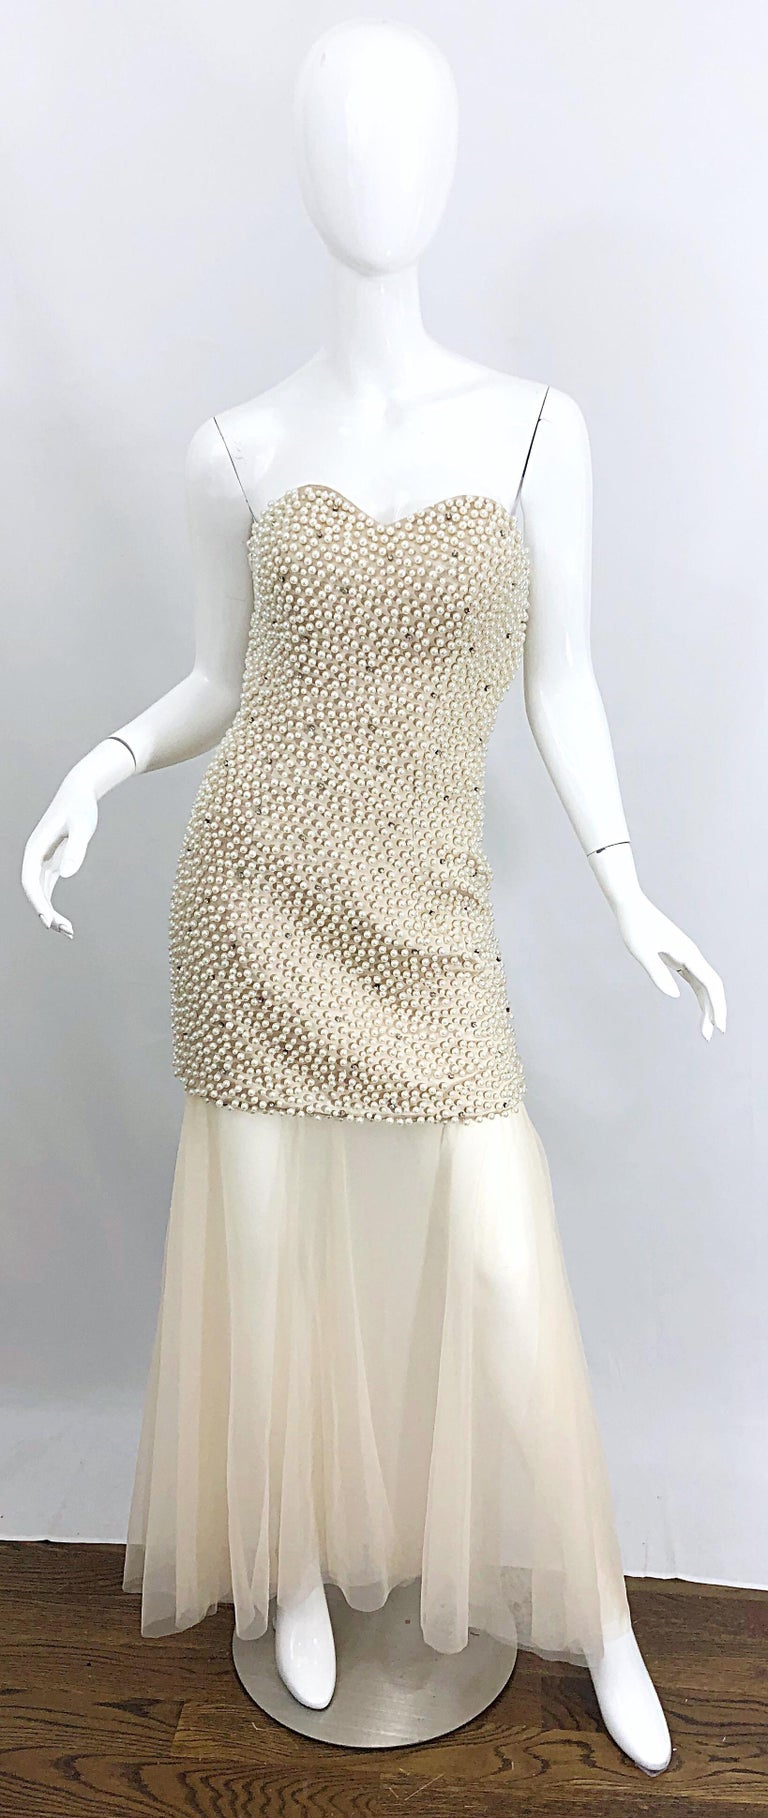 Phenomenal 1990s Couture Pearl + Rhinestone Encrusted Strapless Beige 90s Gown For Sale 11